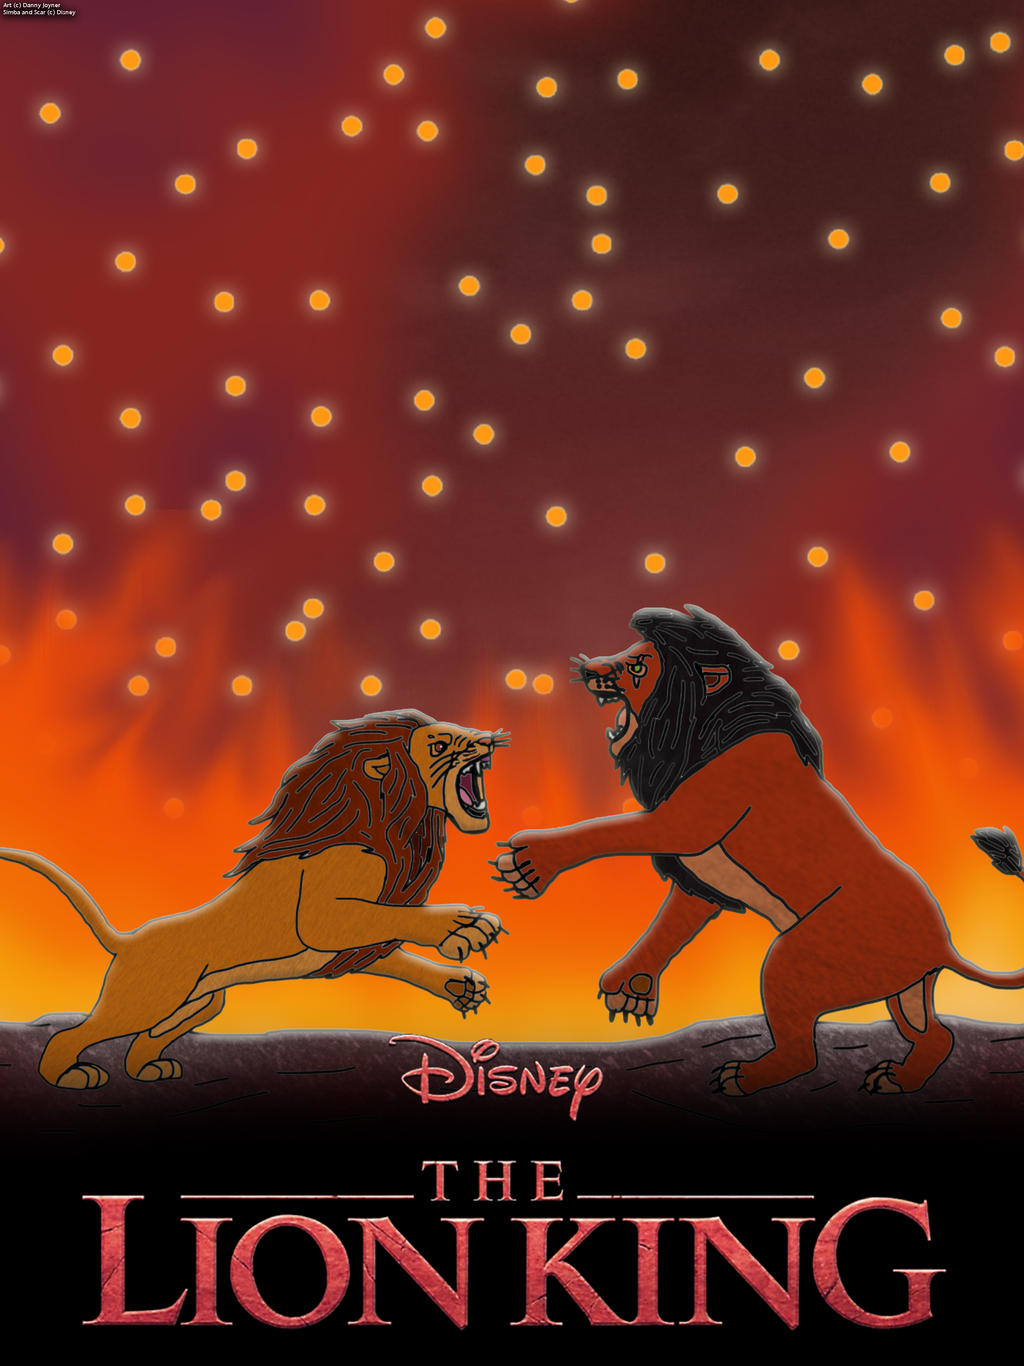 The Lion King 2019 Poster The Final Battle By Rdj1995 On